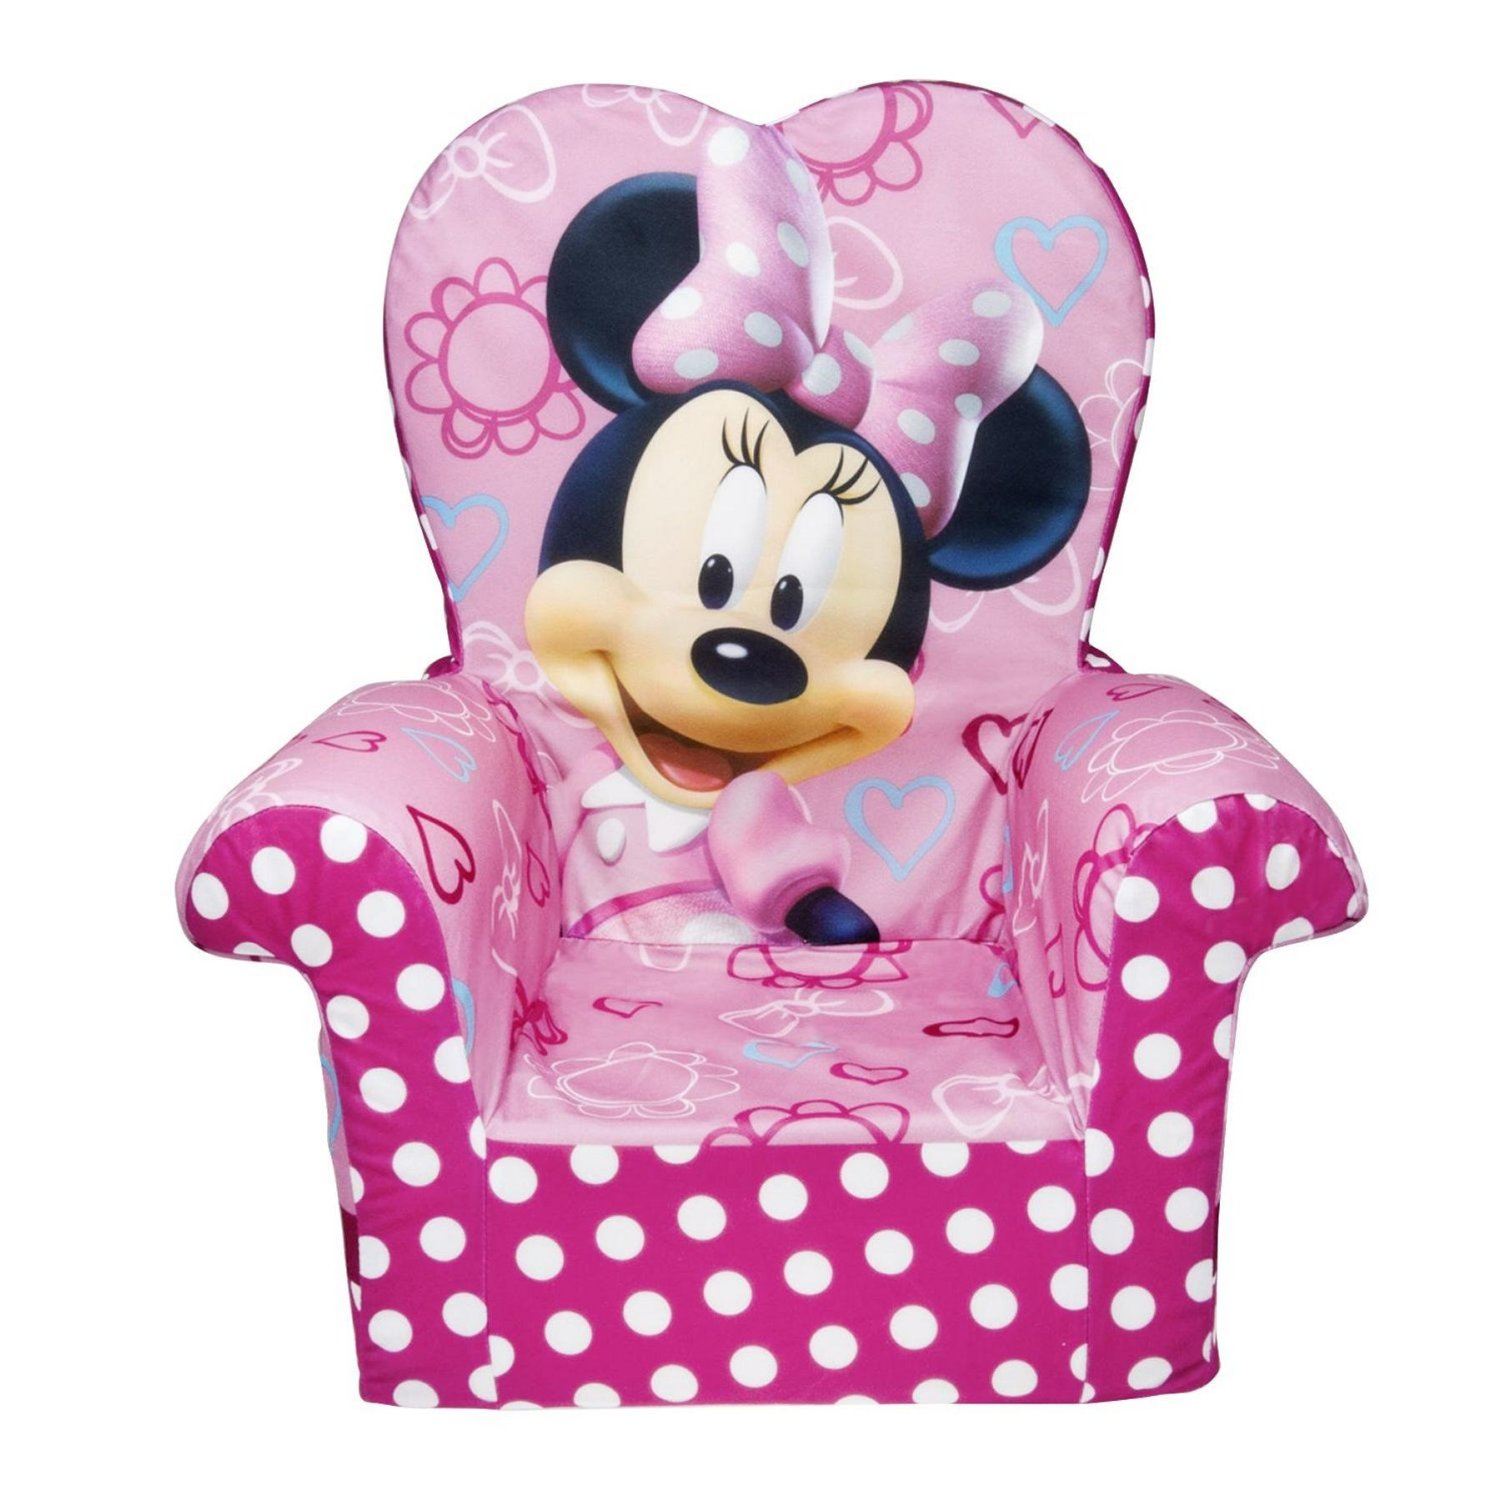 Pink Minnie Mouse Foam Chair With Heart Shaped Back